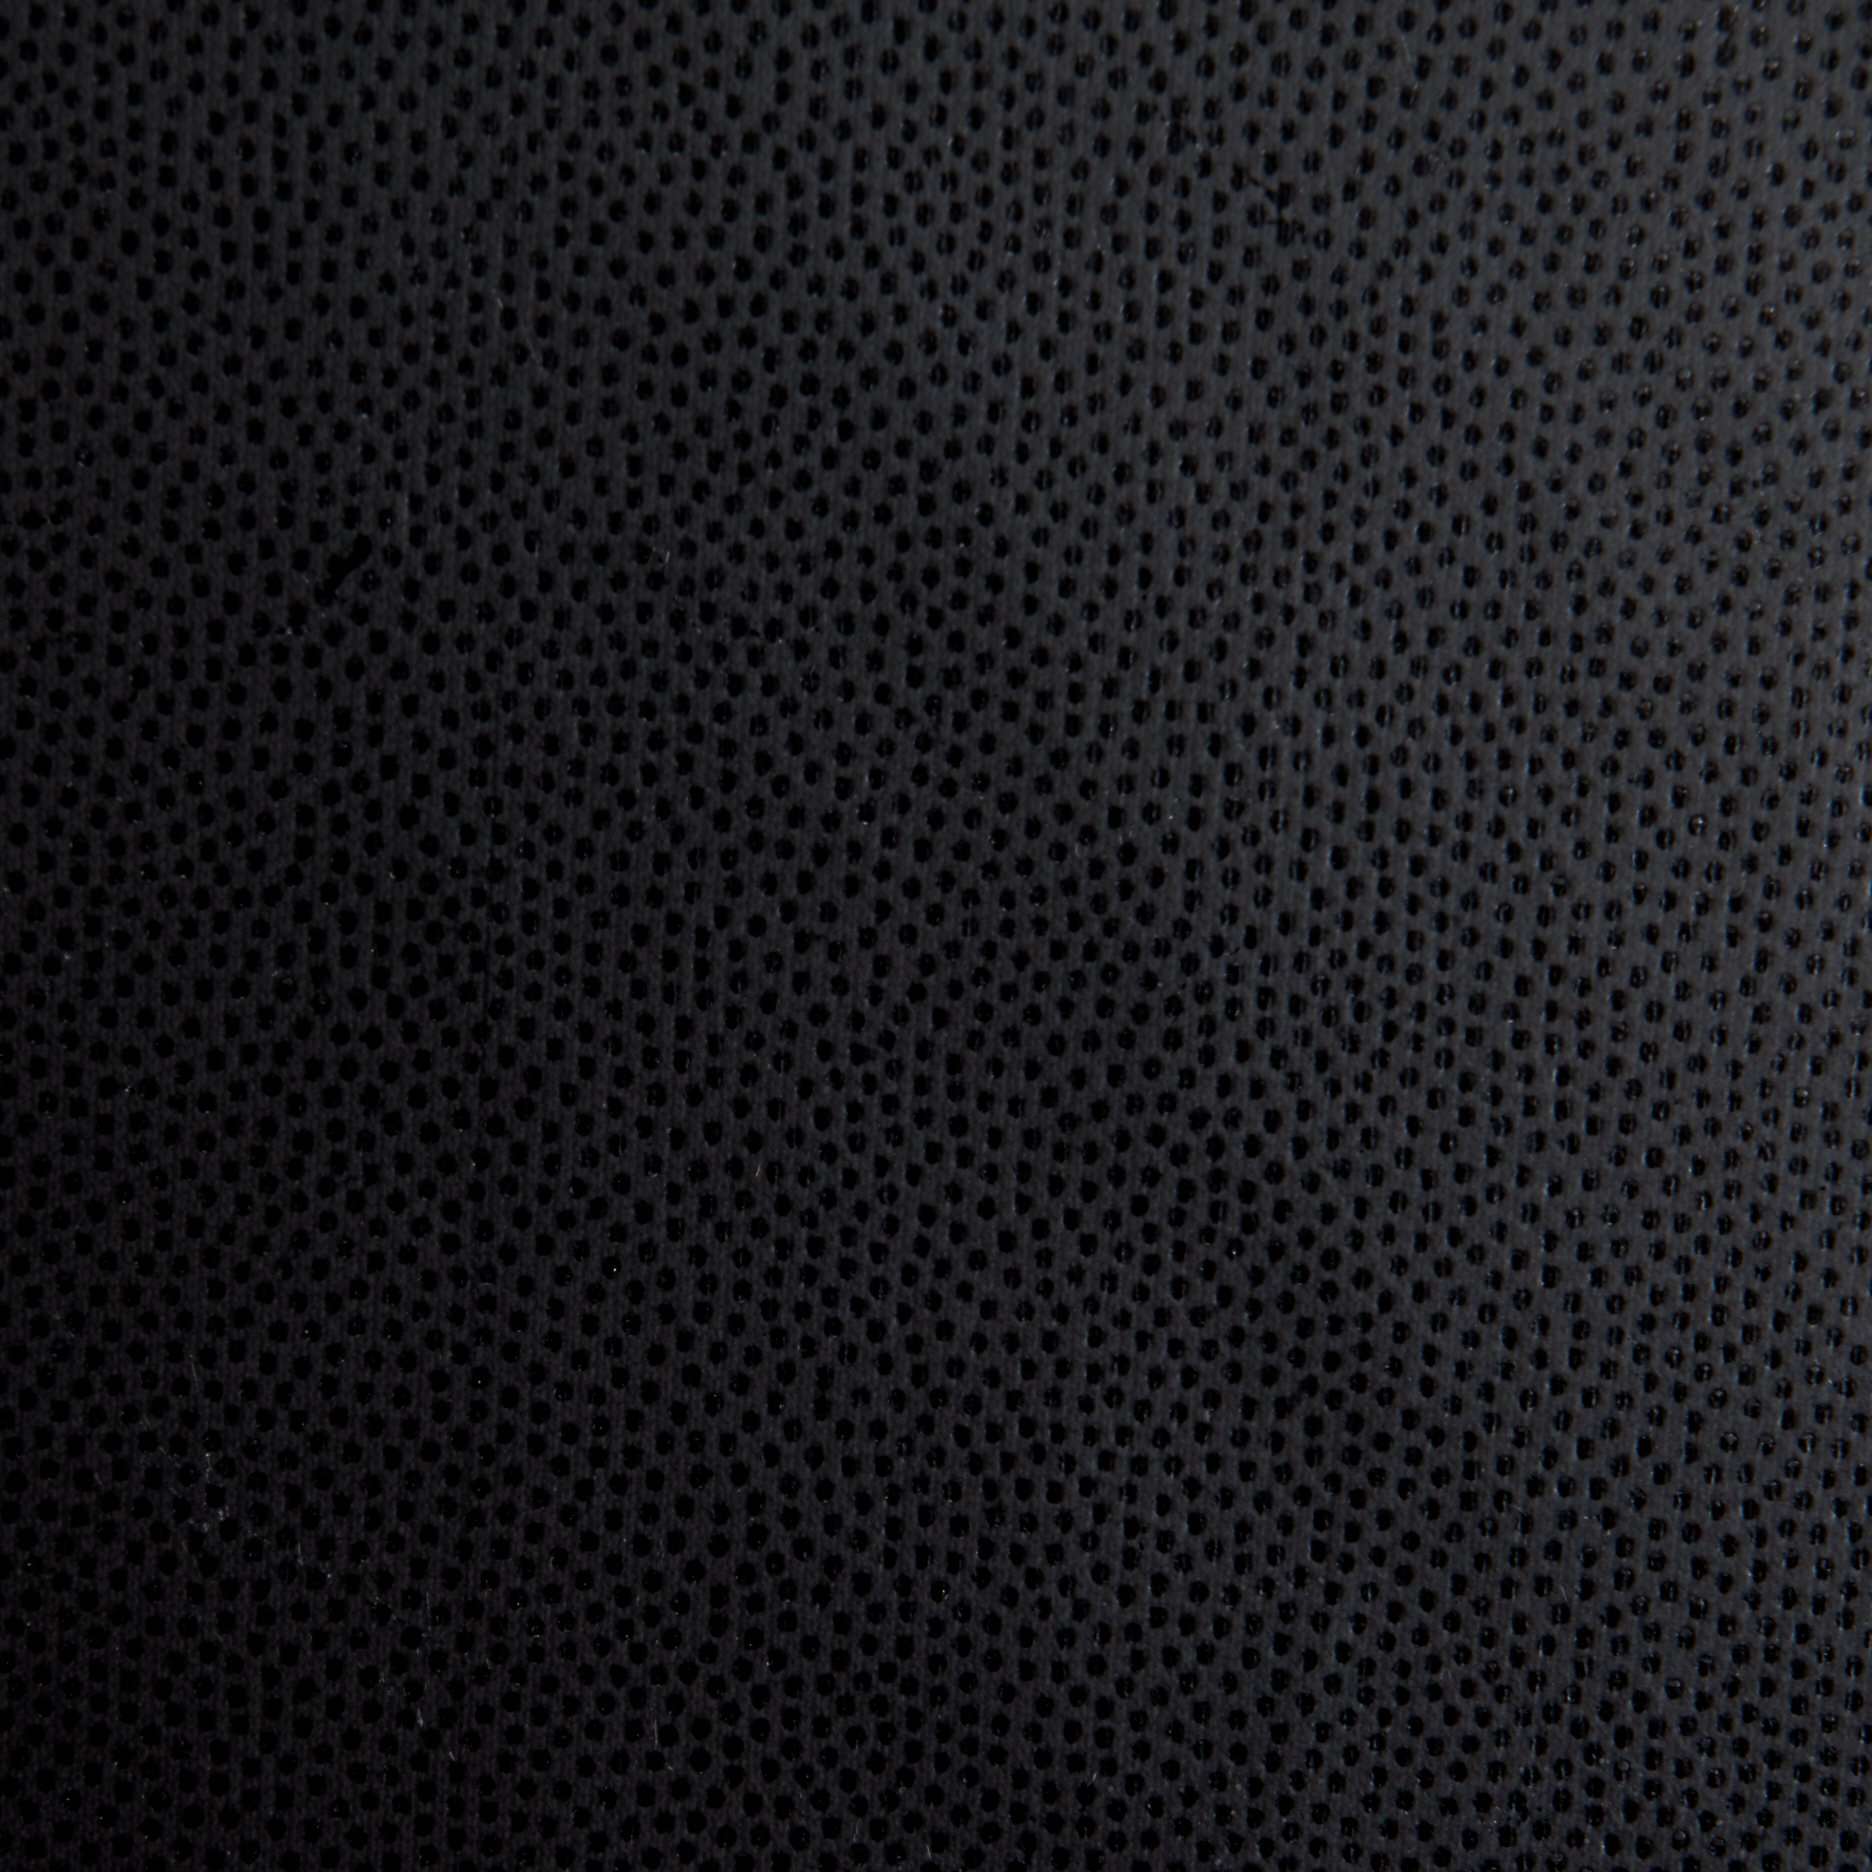 Image of PUL (Polyurethane Laminate) 1Mil Black Fabric